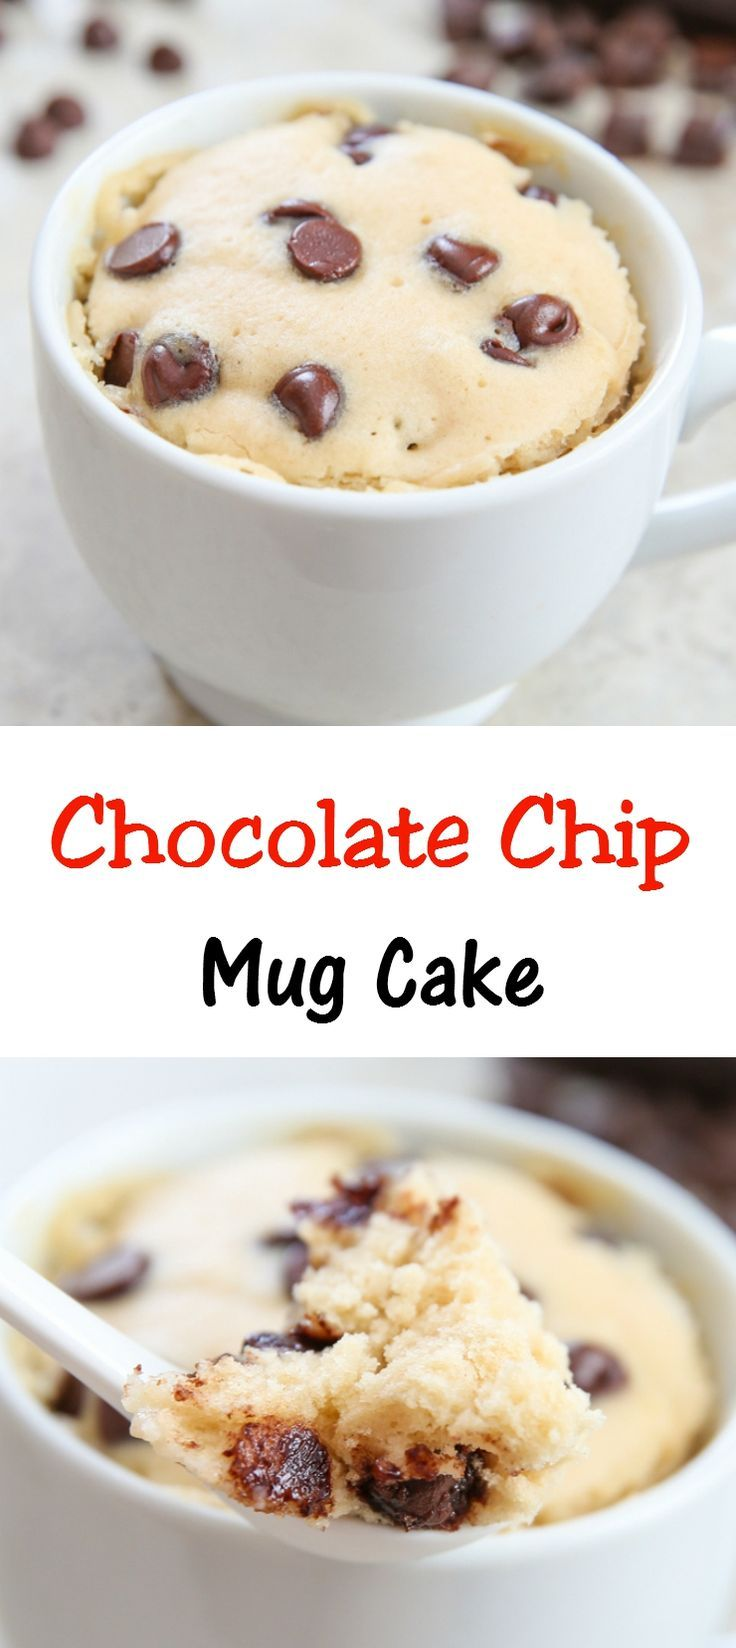 Chocolate Chip Mug Cake - sub butter for oil, double vanilla and add cinnamon